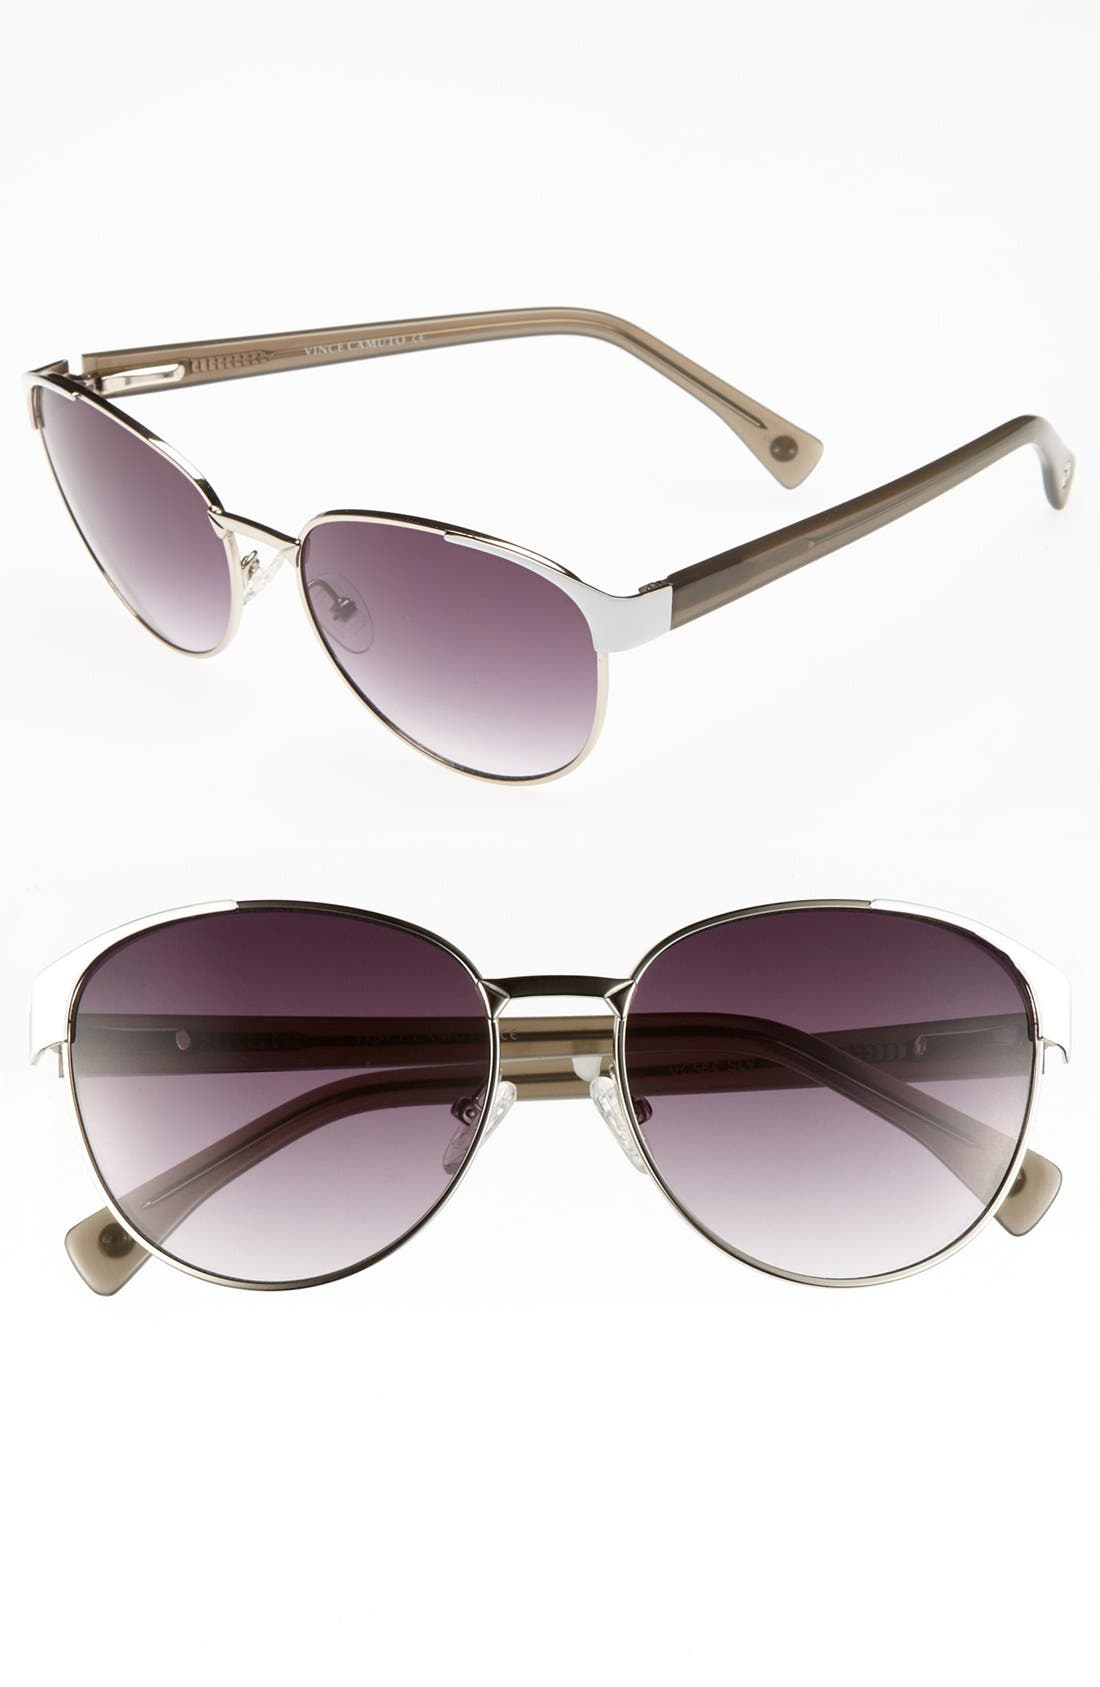 Main Image - Vince Camuto 55mm Retro Sunglasses